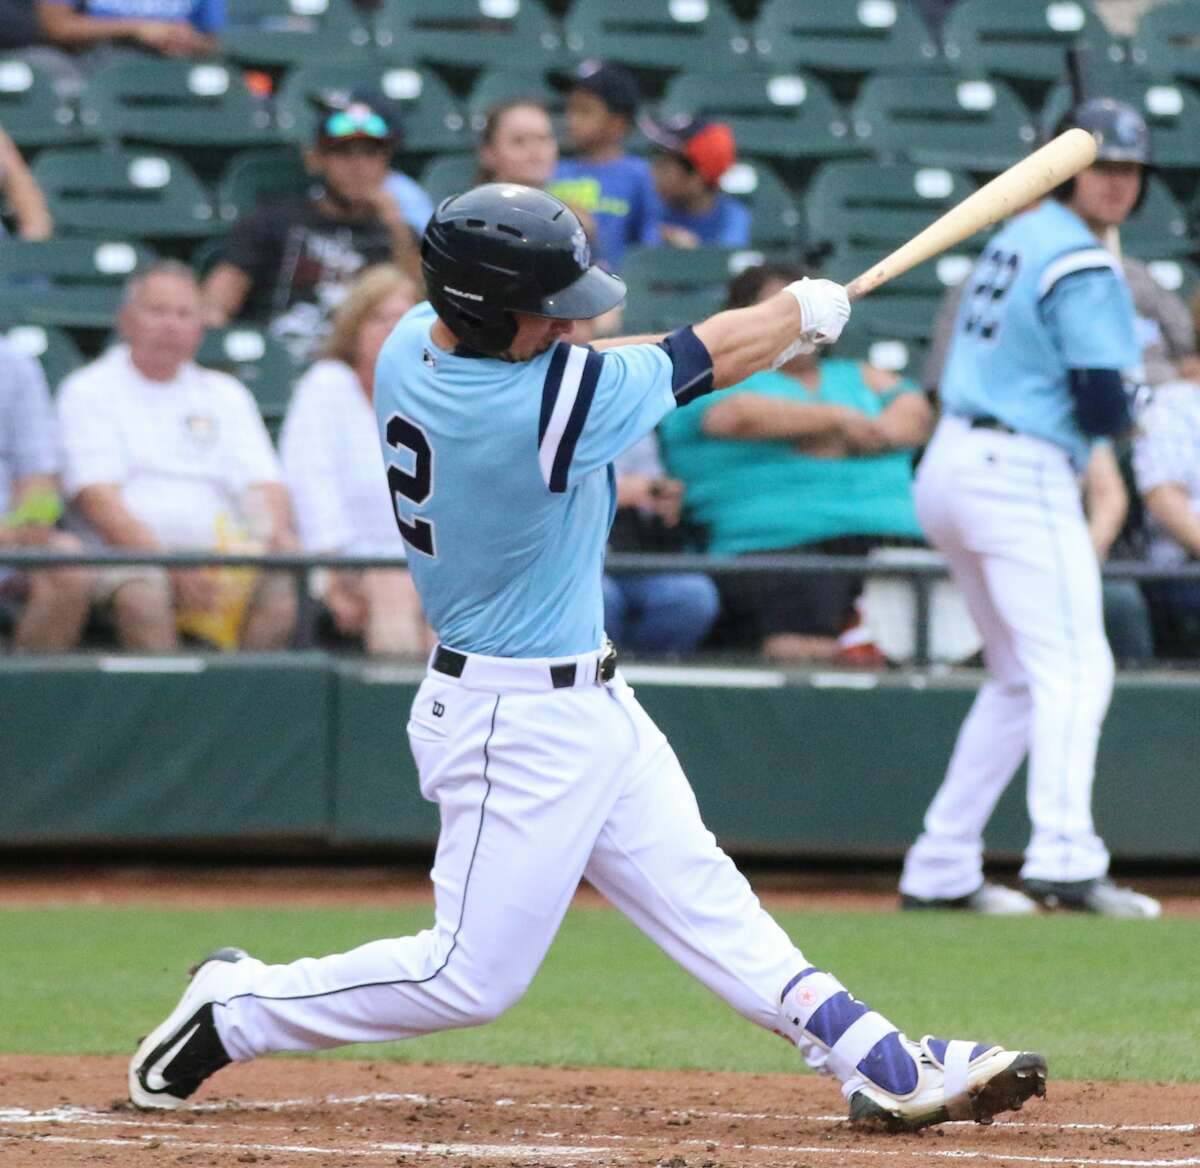 Alex Bregman clubbed 14 home runs for Class AA Corpus Christi during the first half of the Texas League season. (Photo courtesy Amanda Pruett / Corpus Christi Hooks)